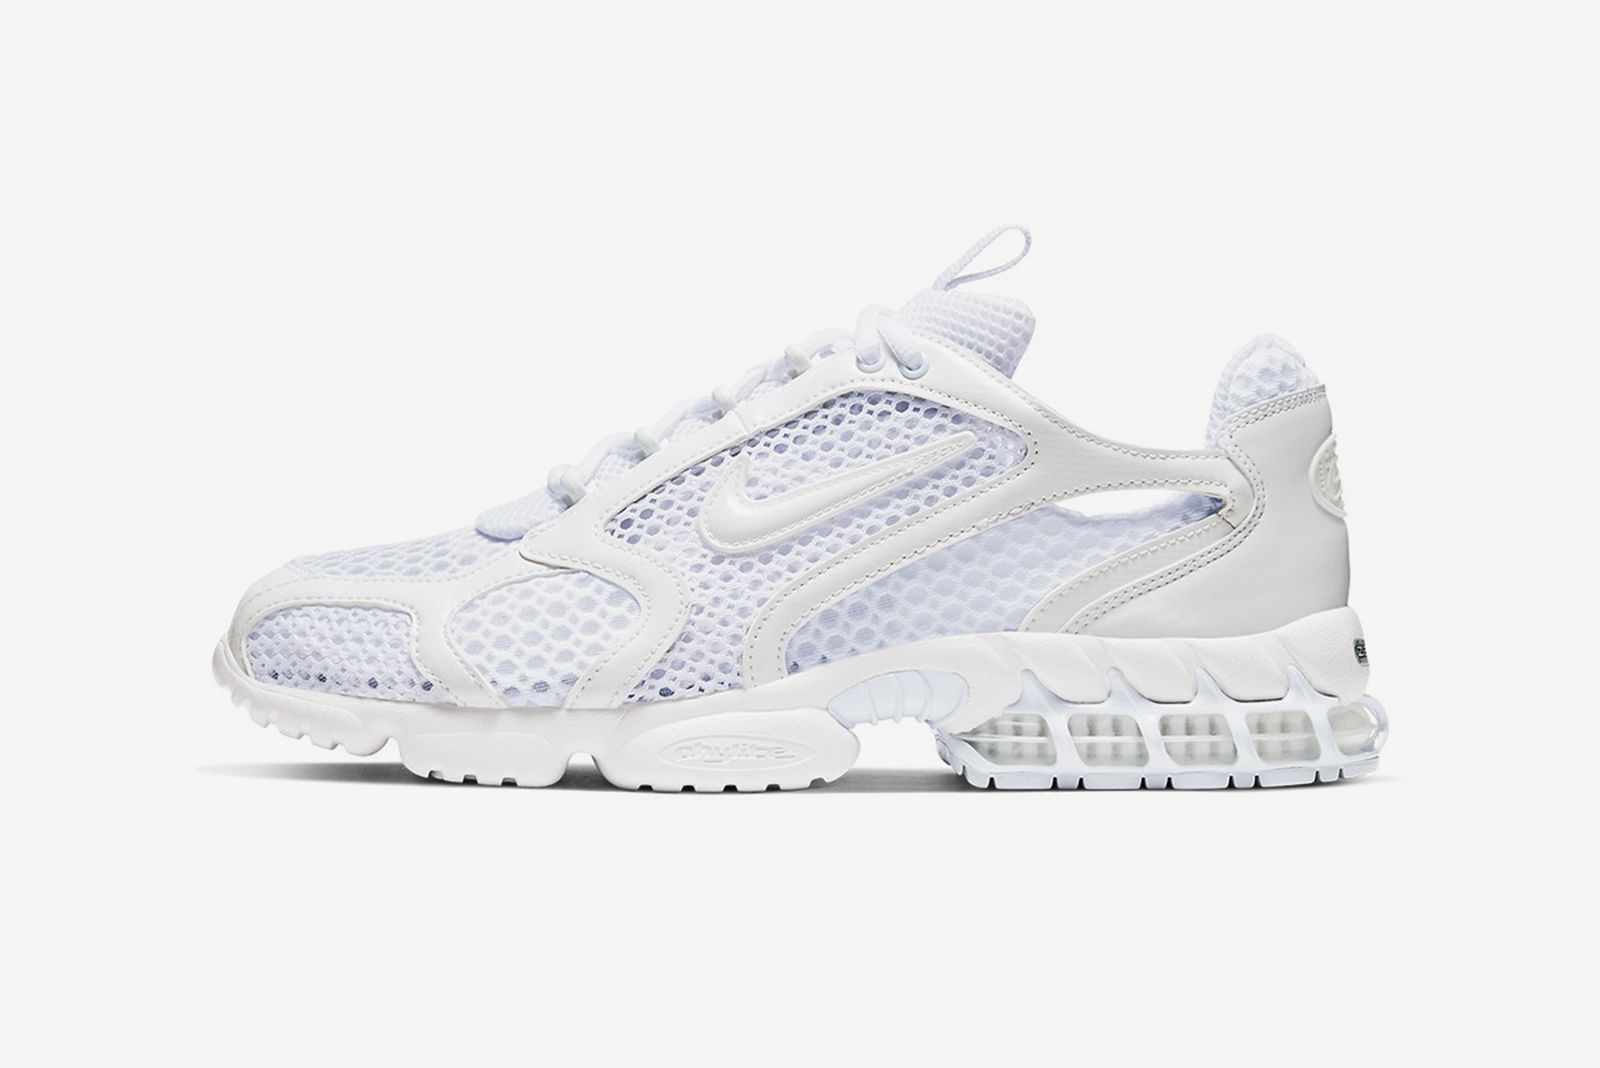 Nike Air Zoom Spiridon Cage 2 Triple White